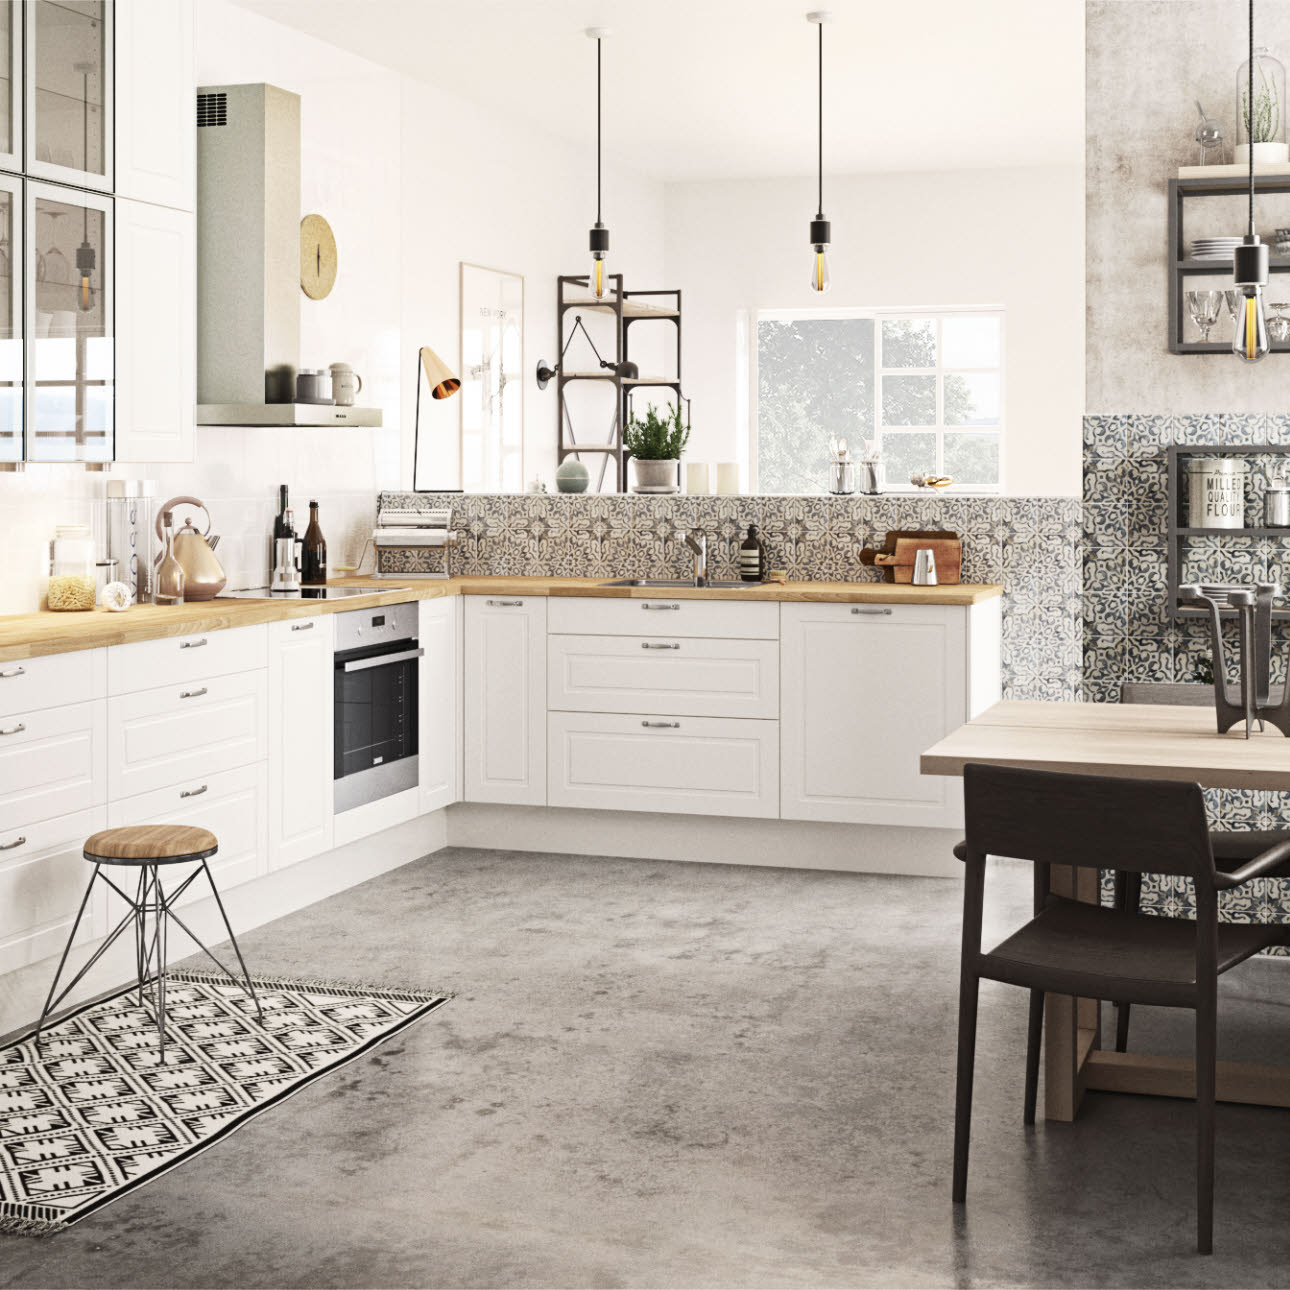 French country kitchen in a romantic and modern style: Sense | HTH